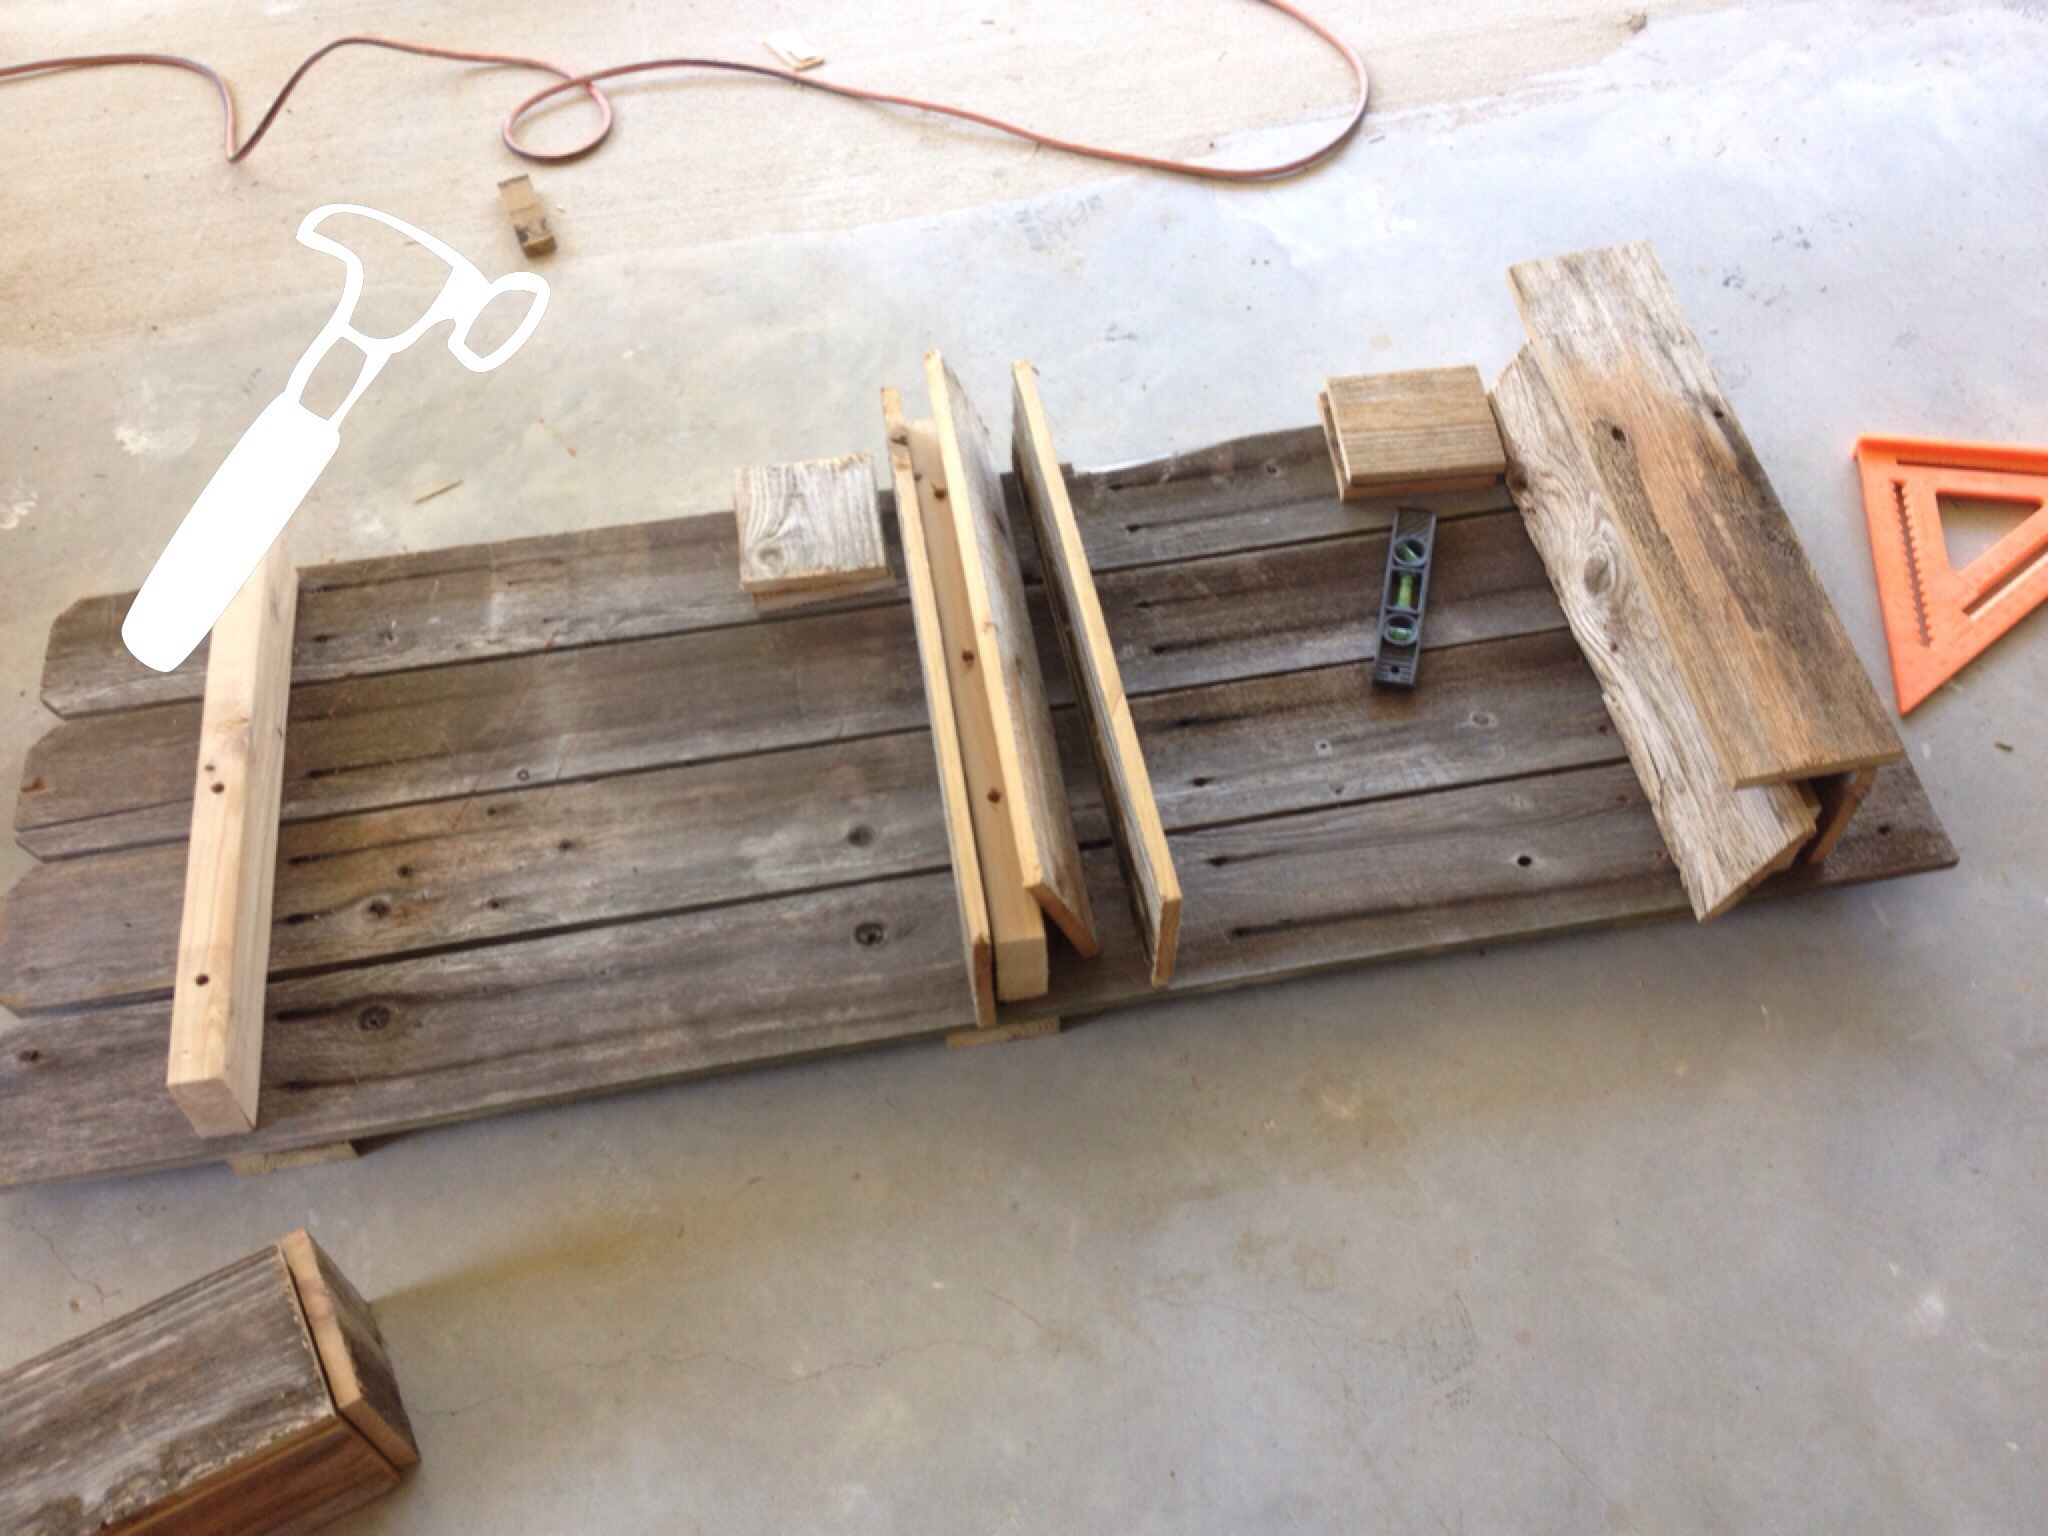 Wondrous Building A Rustic Bathroom Shelf By Weekend Country Girl Featured On Remodelaholic Building Bathroom Shelves Ideas Building Bathroom Closet Shelves bathroom Building Bathroom Shelves